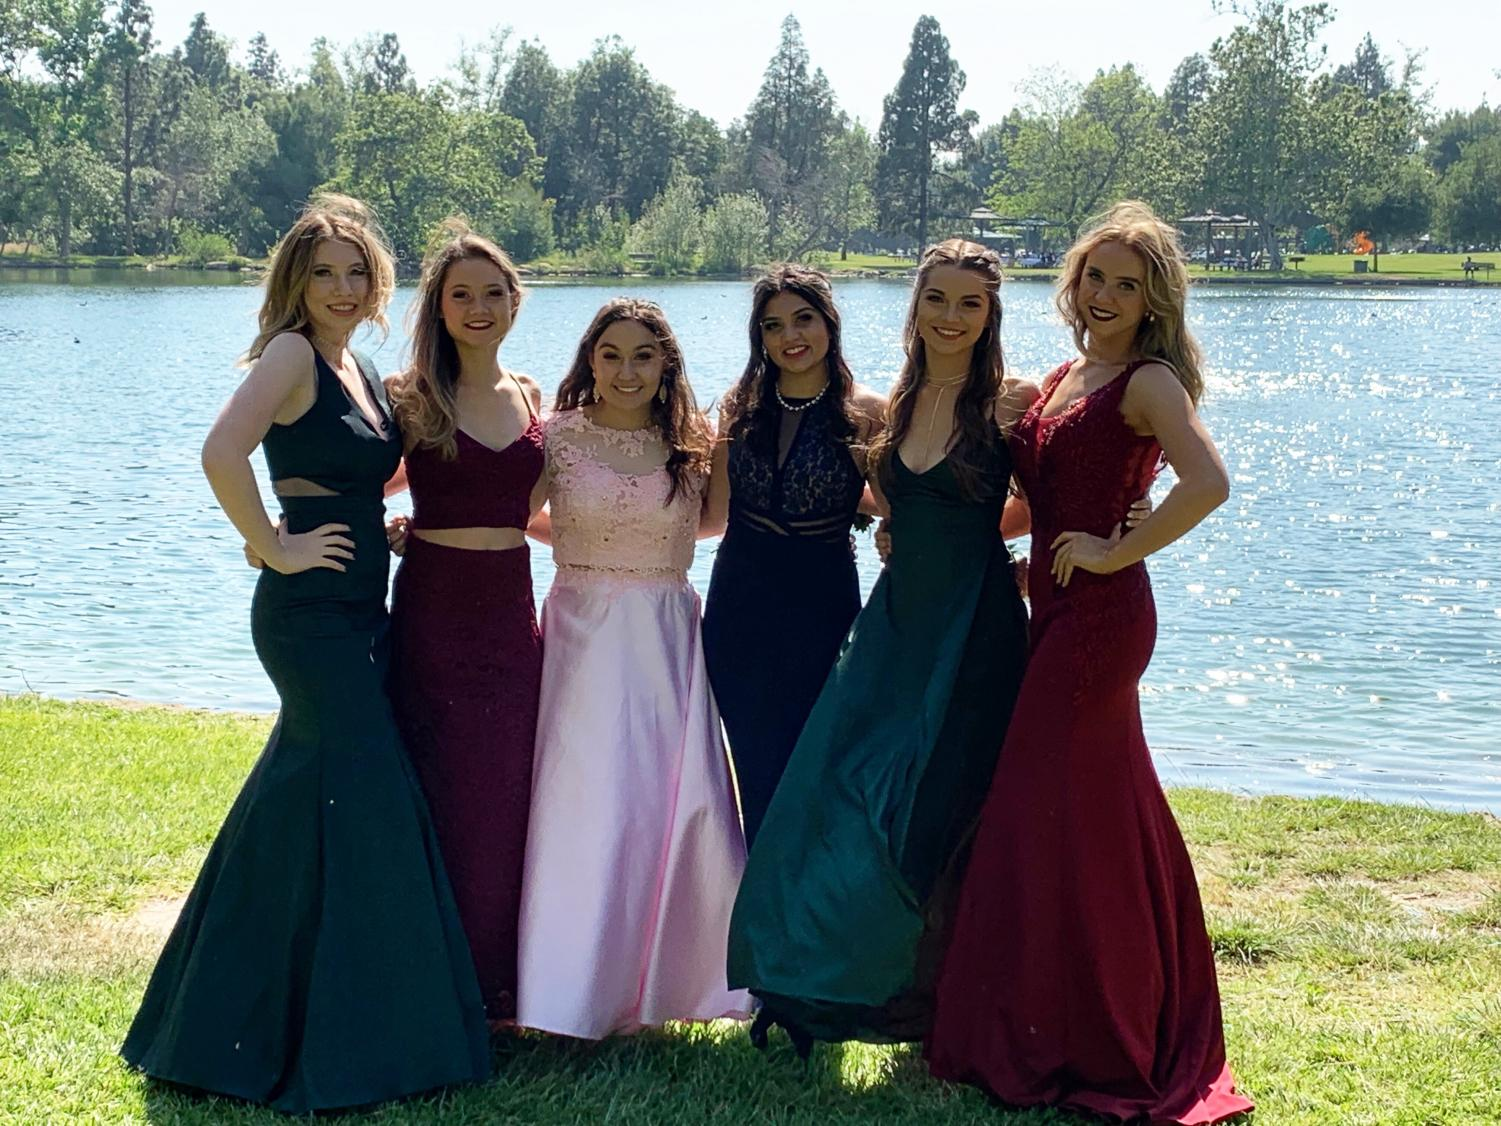 This is a picture of friends for many years together at prom for their junior year.